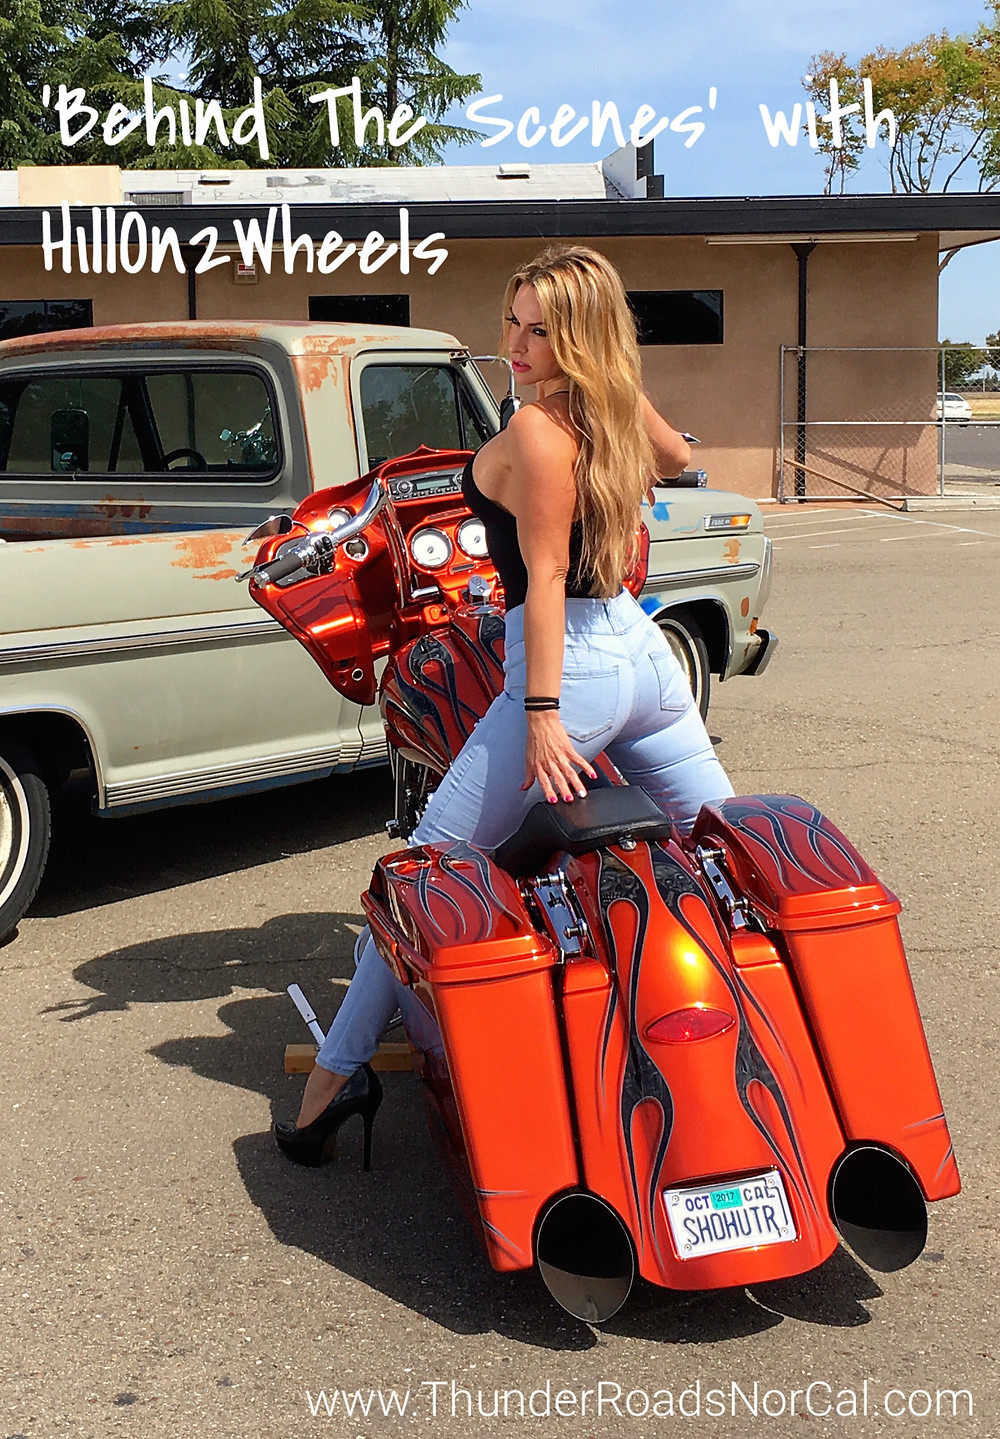 Subscribe on YOUTUBE to Hillon2Wheels